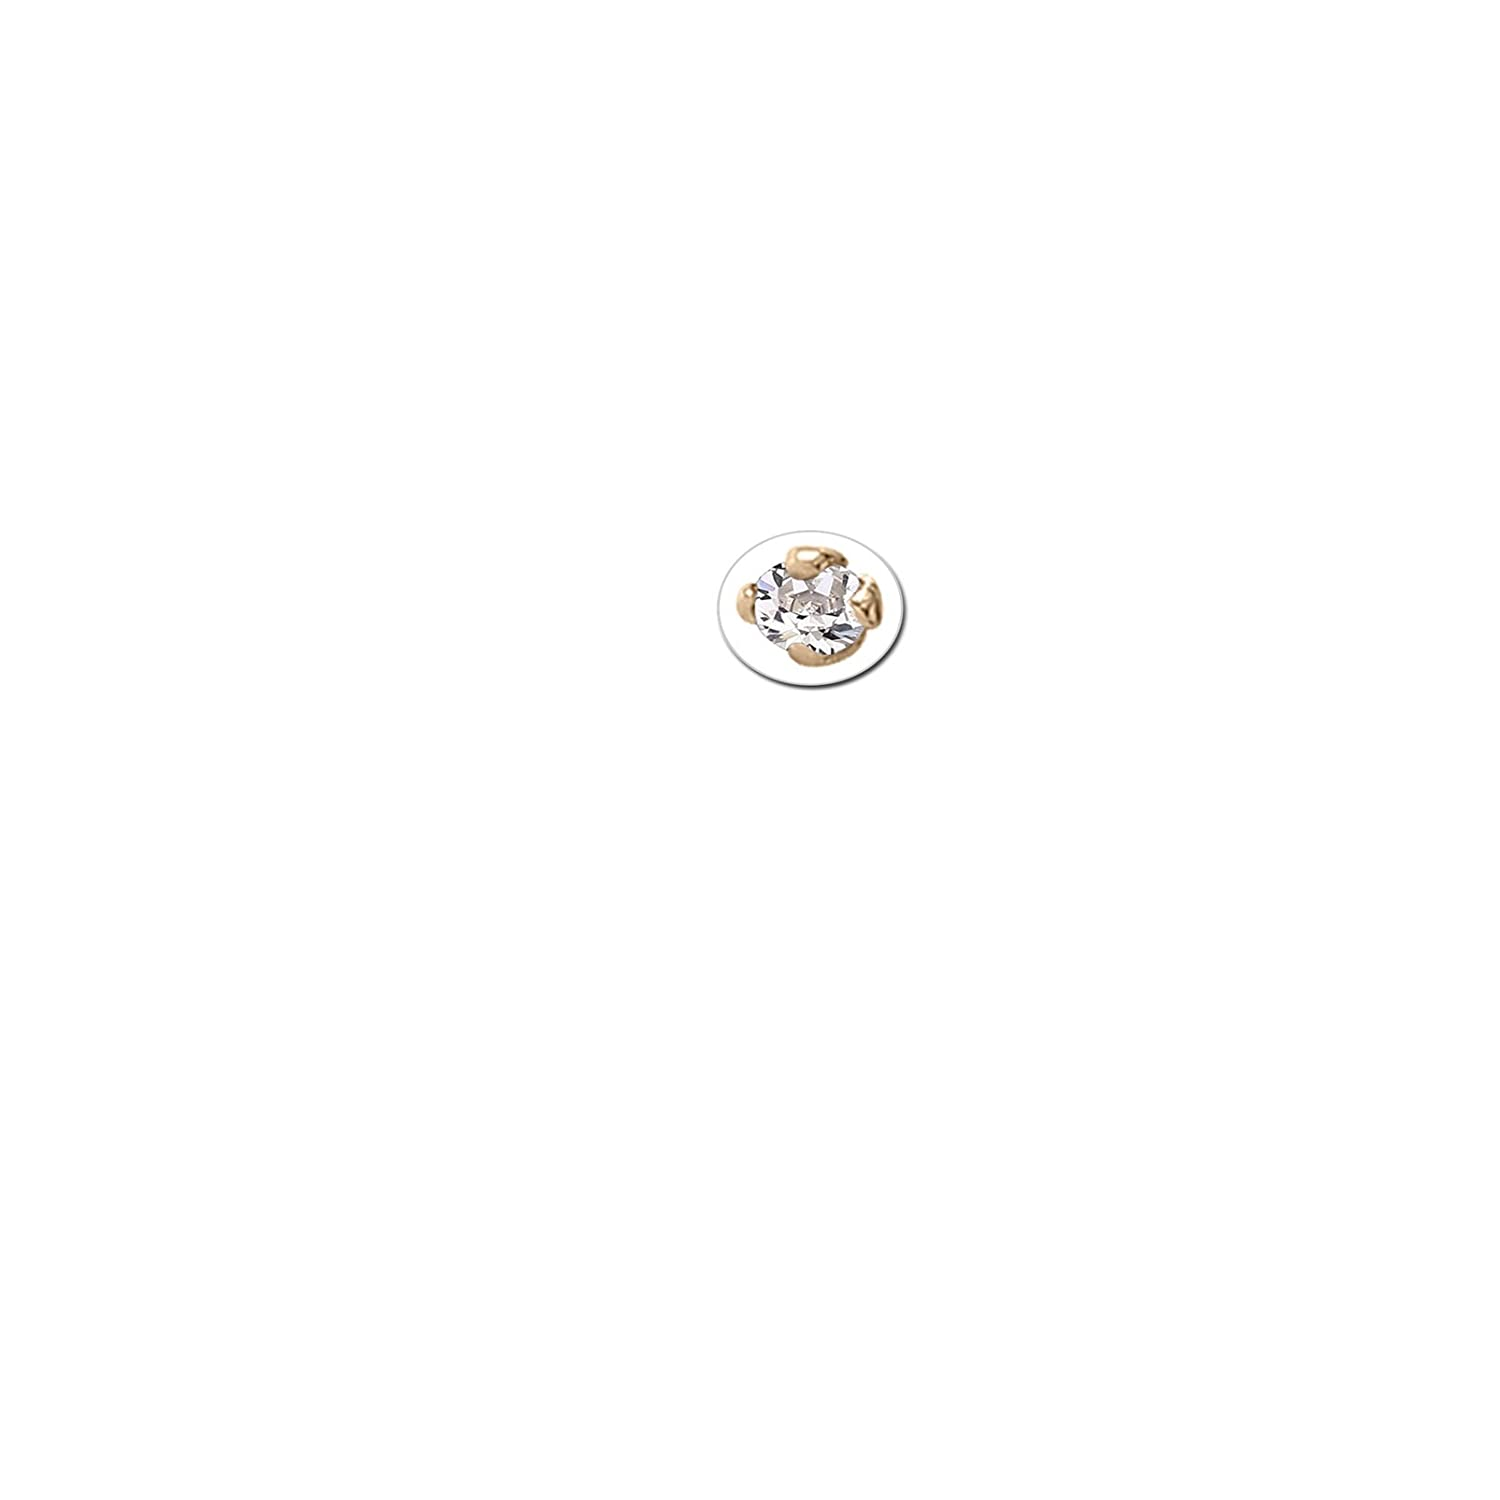 El Morro Body Piercing Jewelry 18K Gold 1.5Mm Prong Jeweled Straight Nose Stud Ring 22g 20g 18g Spasso 866-74GHC8-L-6.4-71.6-7.1-VK